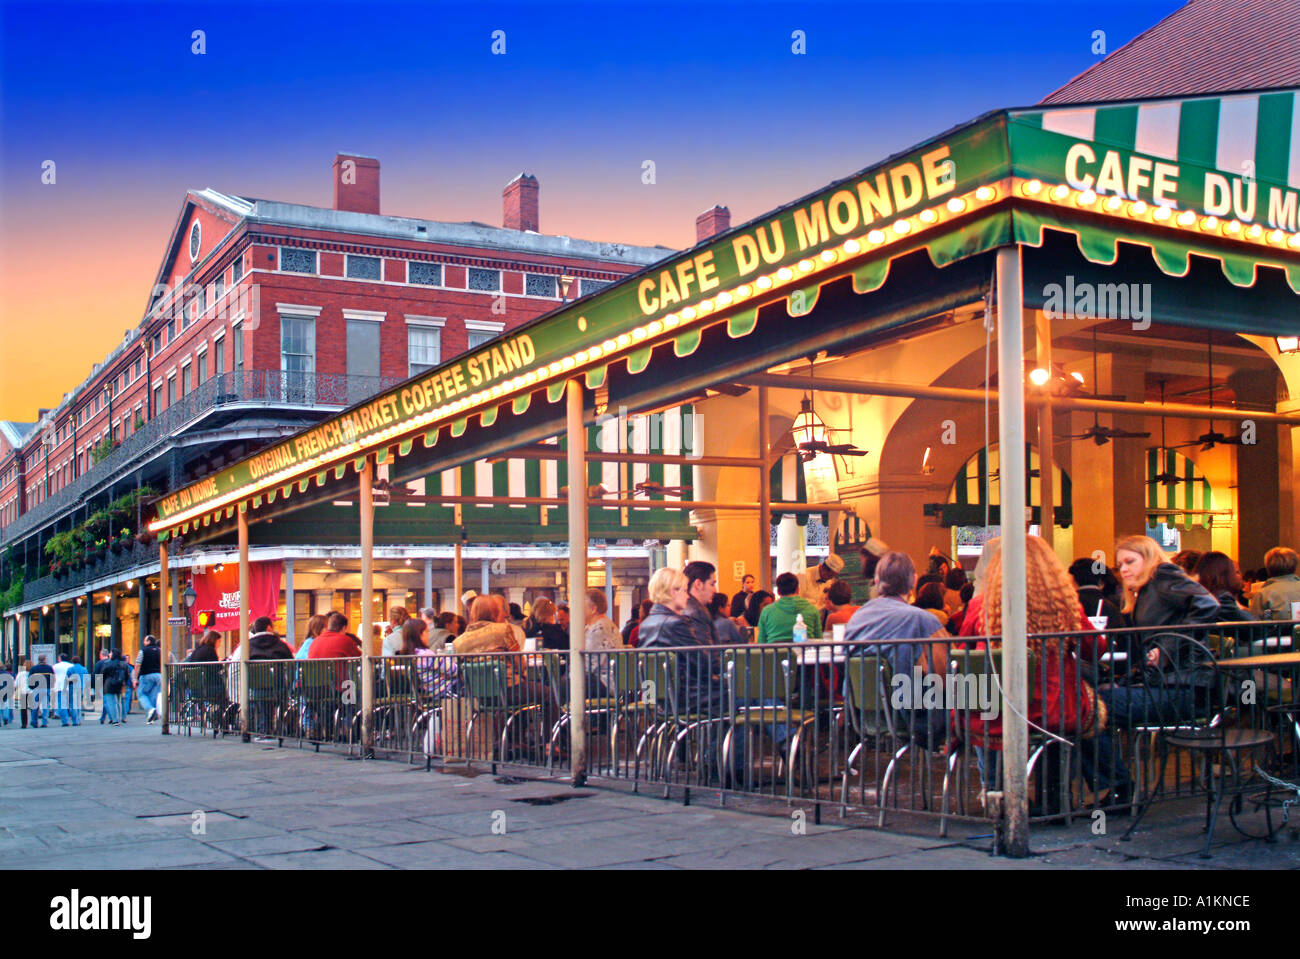 new orleans french quarter caf du monde stock photo 3357133 alamy. Black Bedroom Furniture Sets. Home Design Ideas